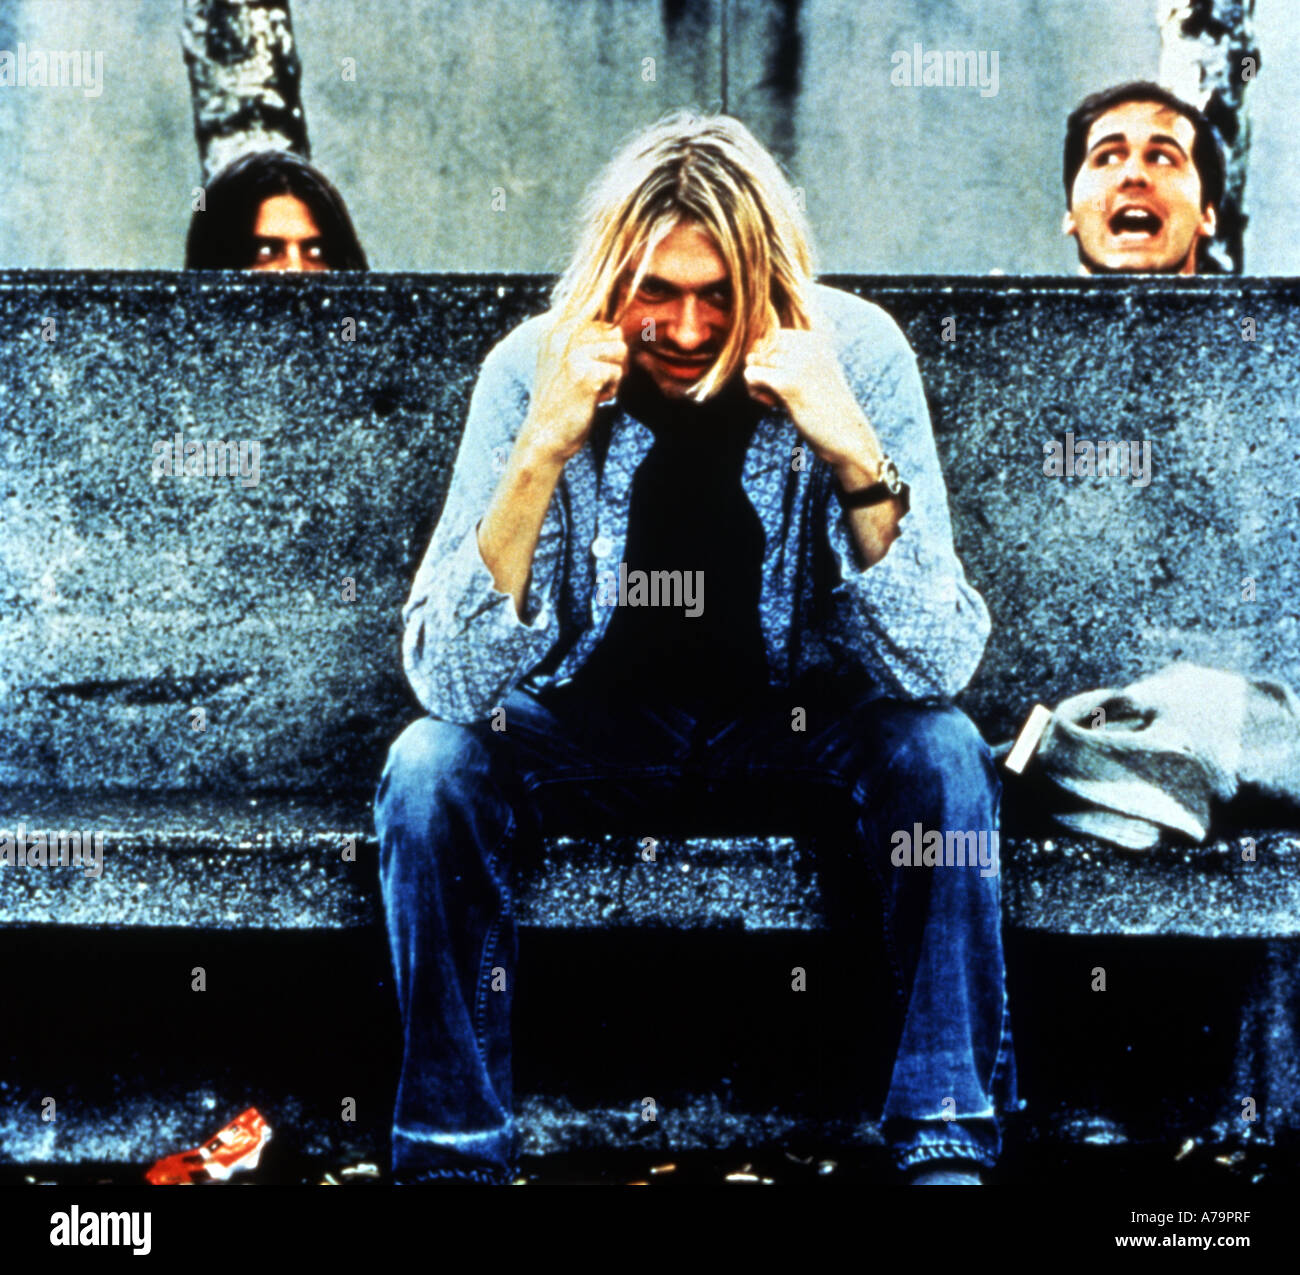 NIRVANA publicity photo of UK group - editorial only - Stock Image